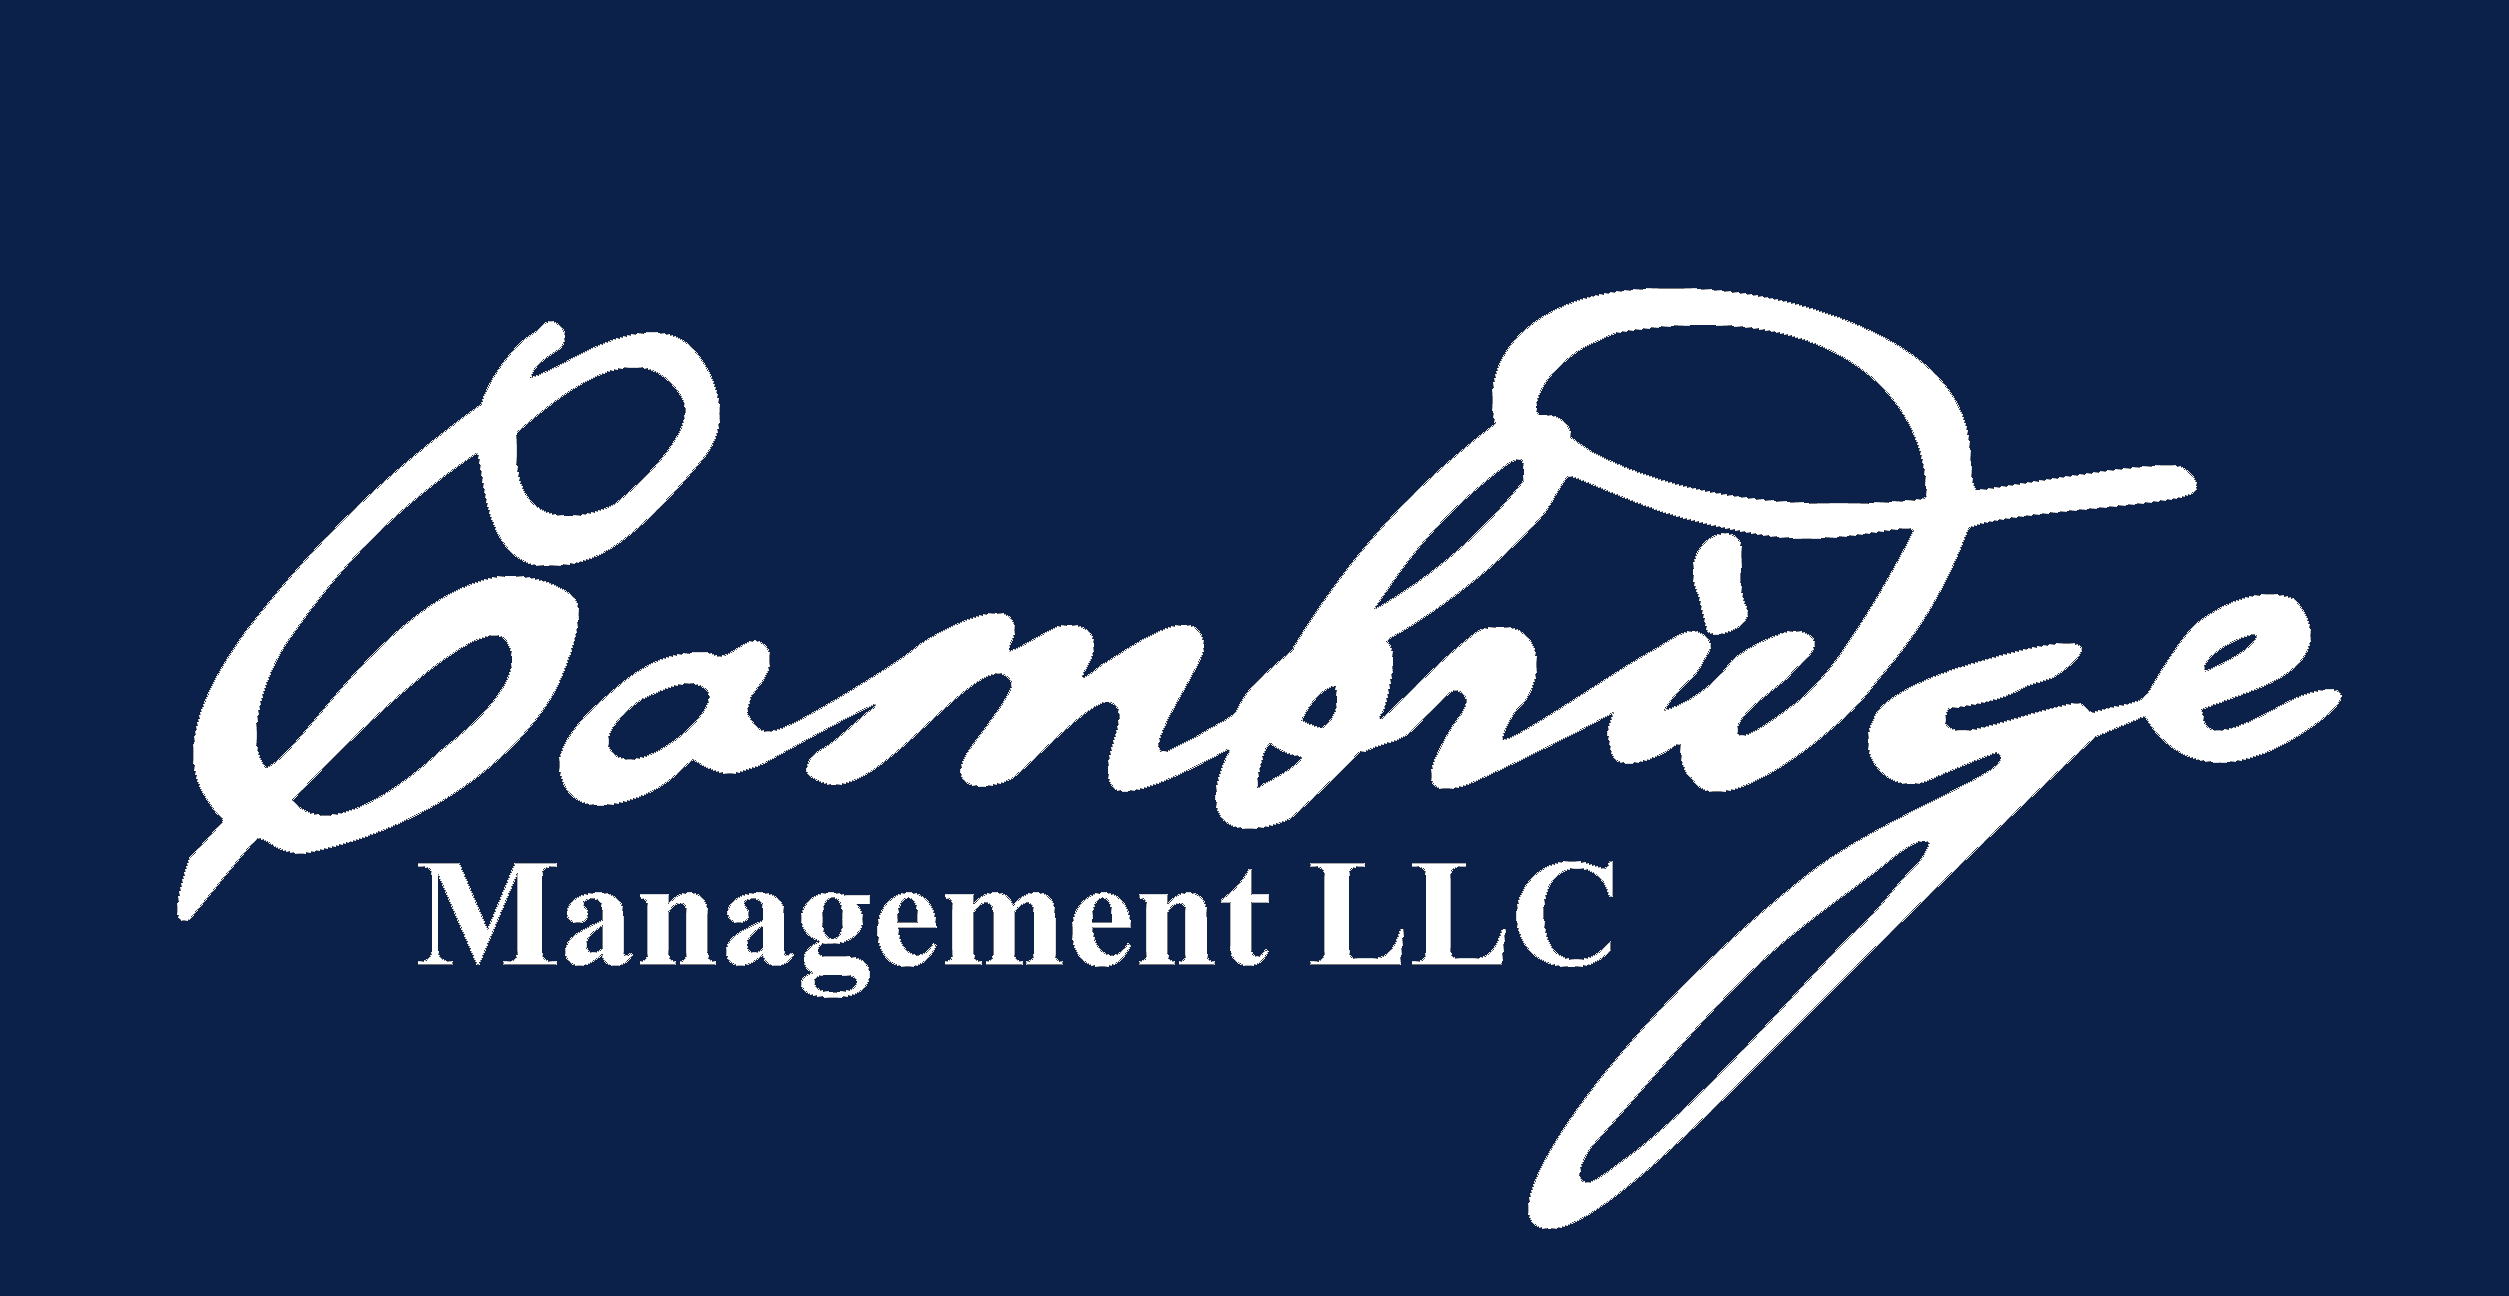 Cambridge Management LTD.